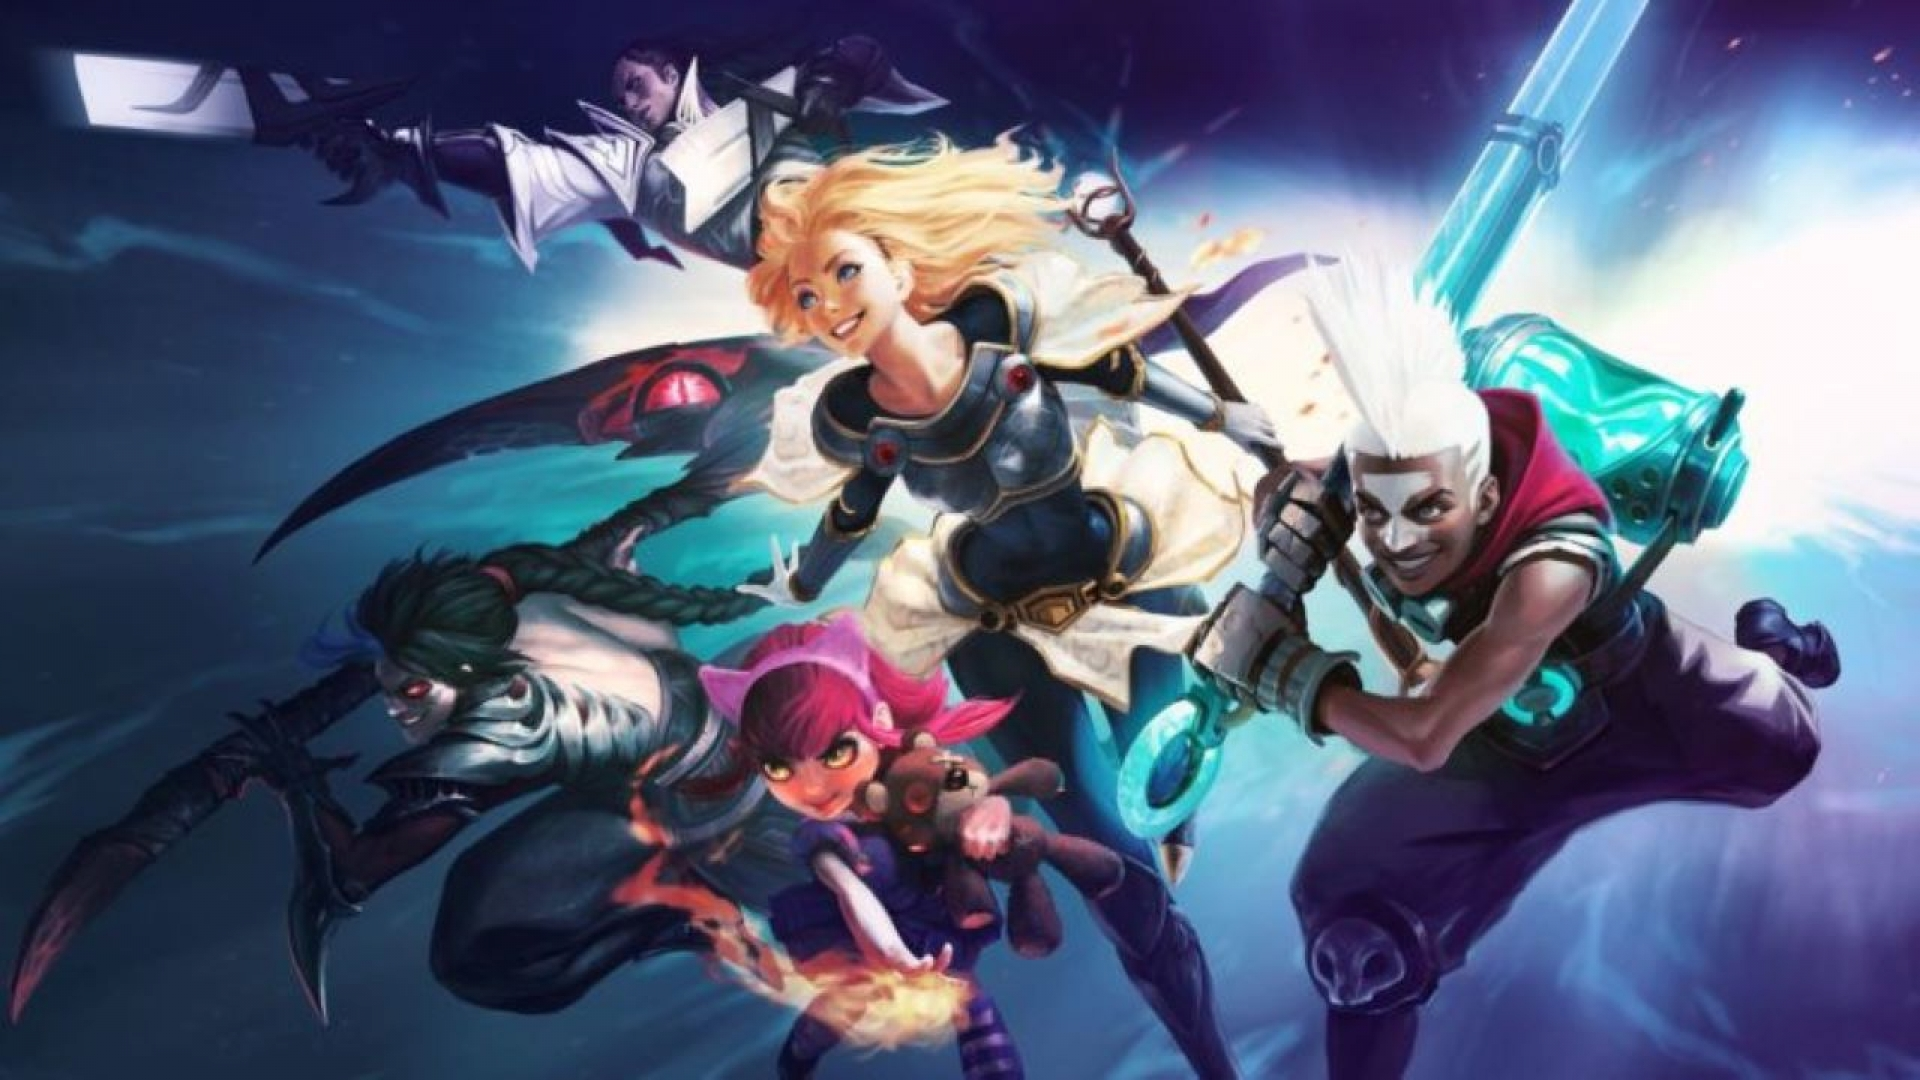 Curso de coach sobre League of Legends